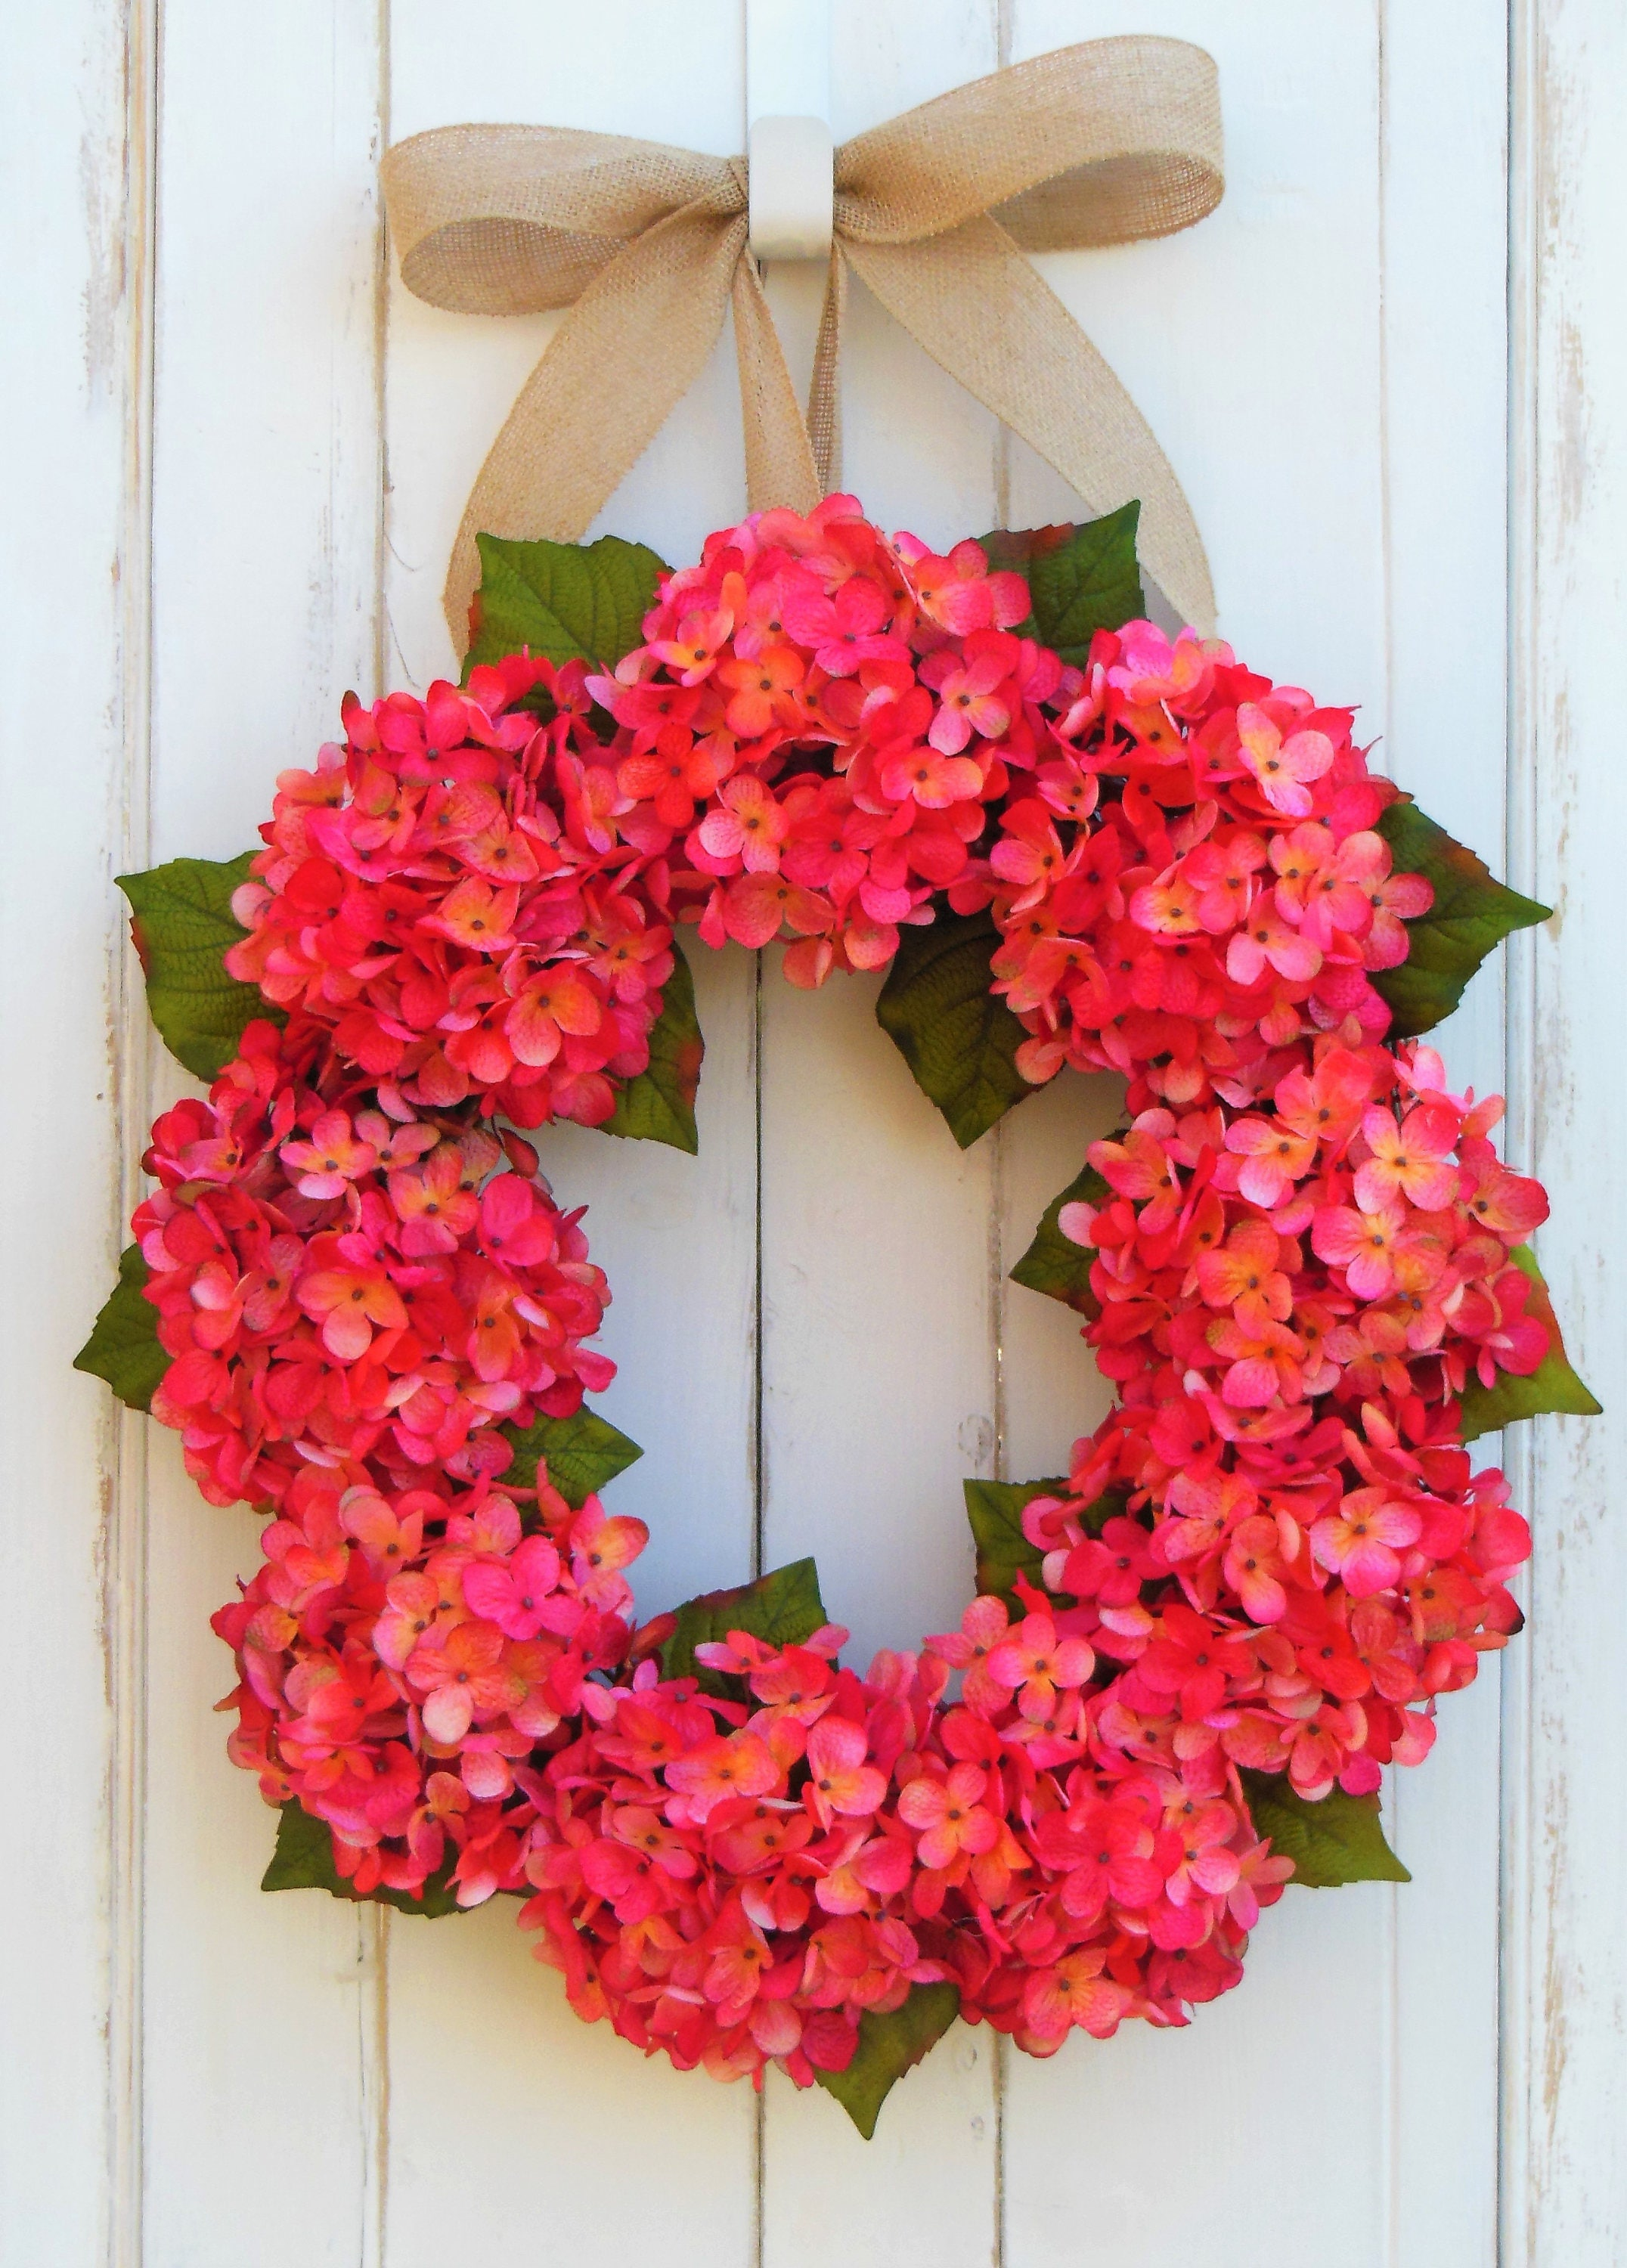 Hydrangea Door Wreath, Front Door Wreath, Summer Wreath, Spring Wreath,  Everyday Wreath, Wreaths Hydrangea, Bright Pink Hydrangea, Pink